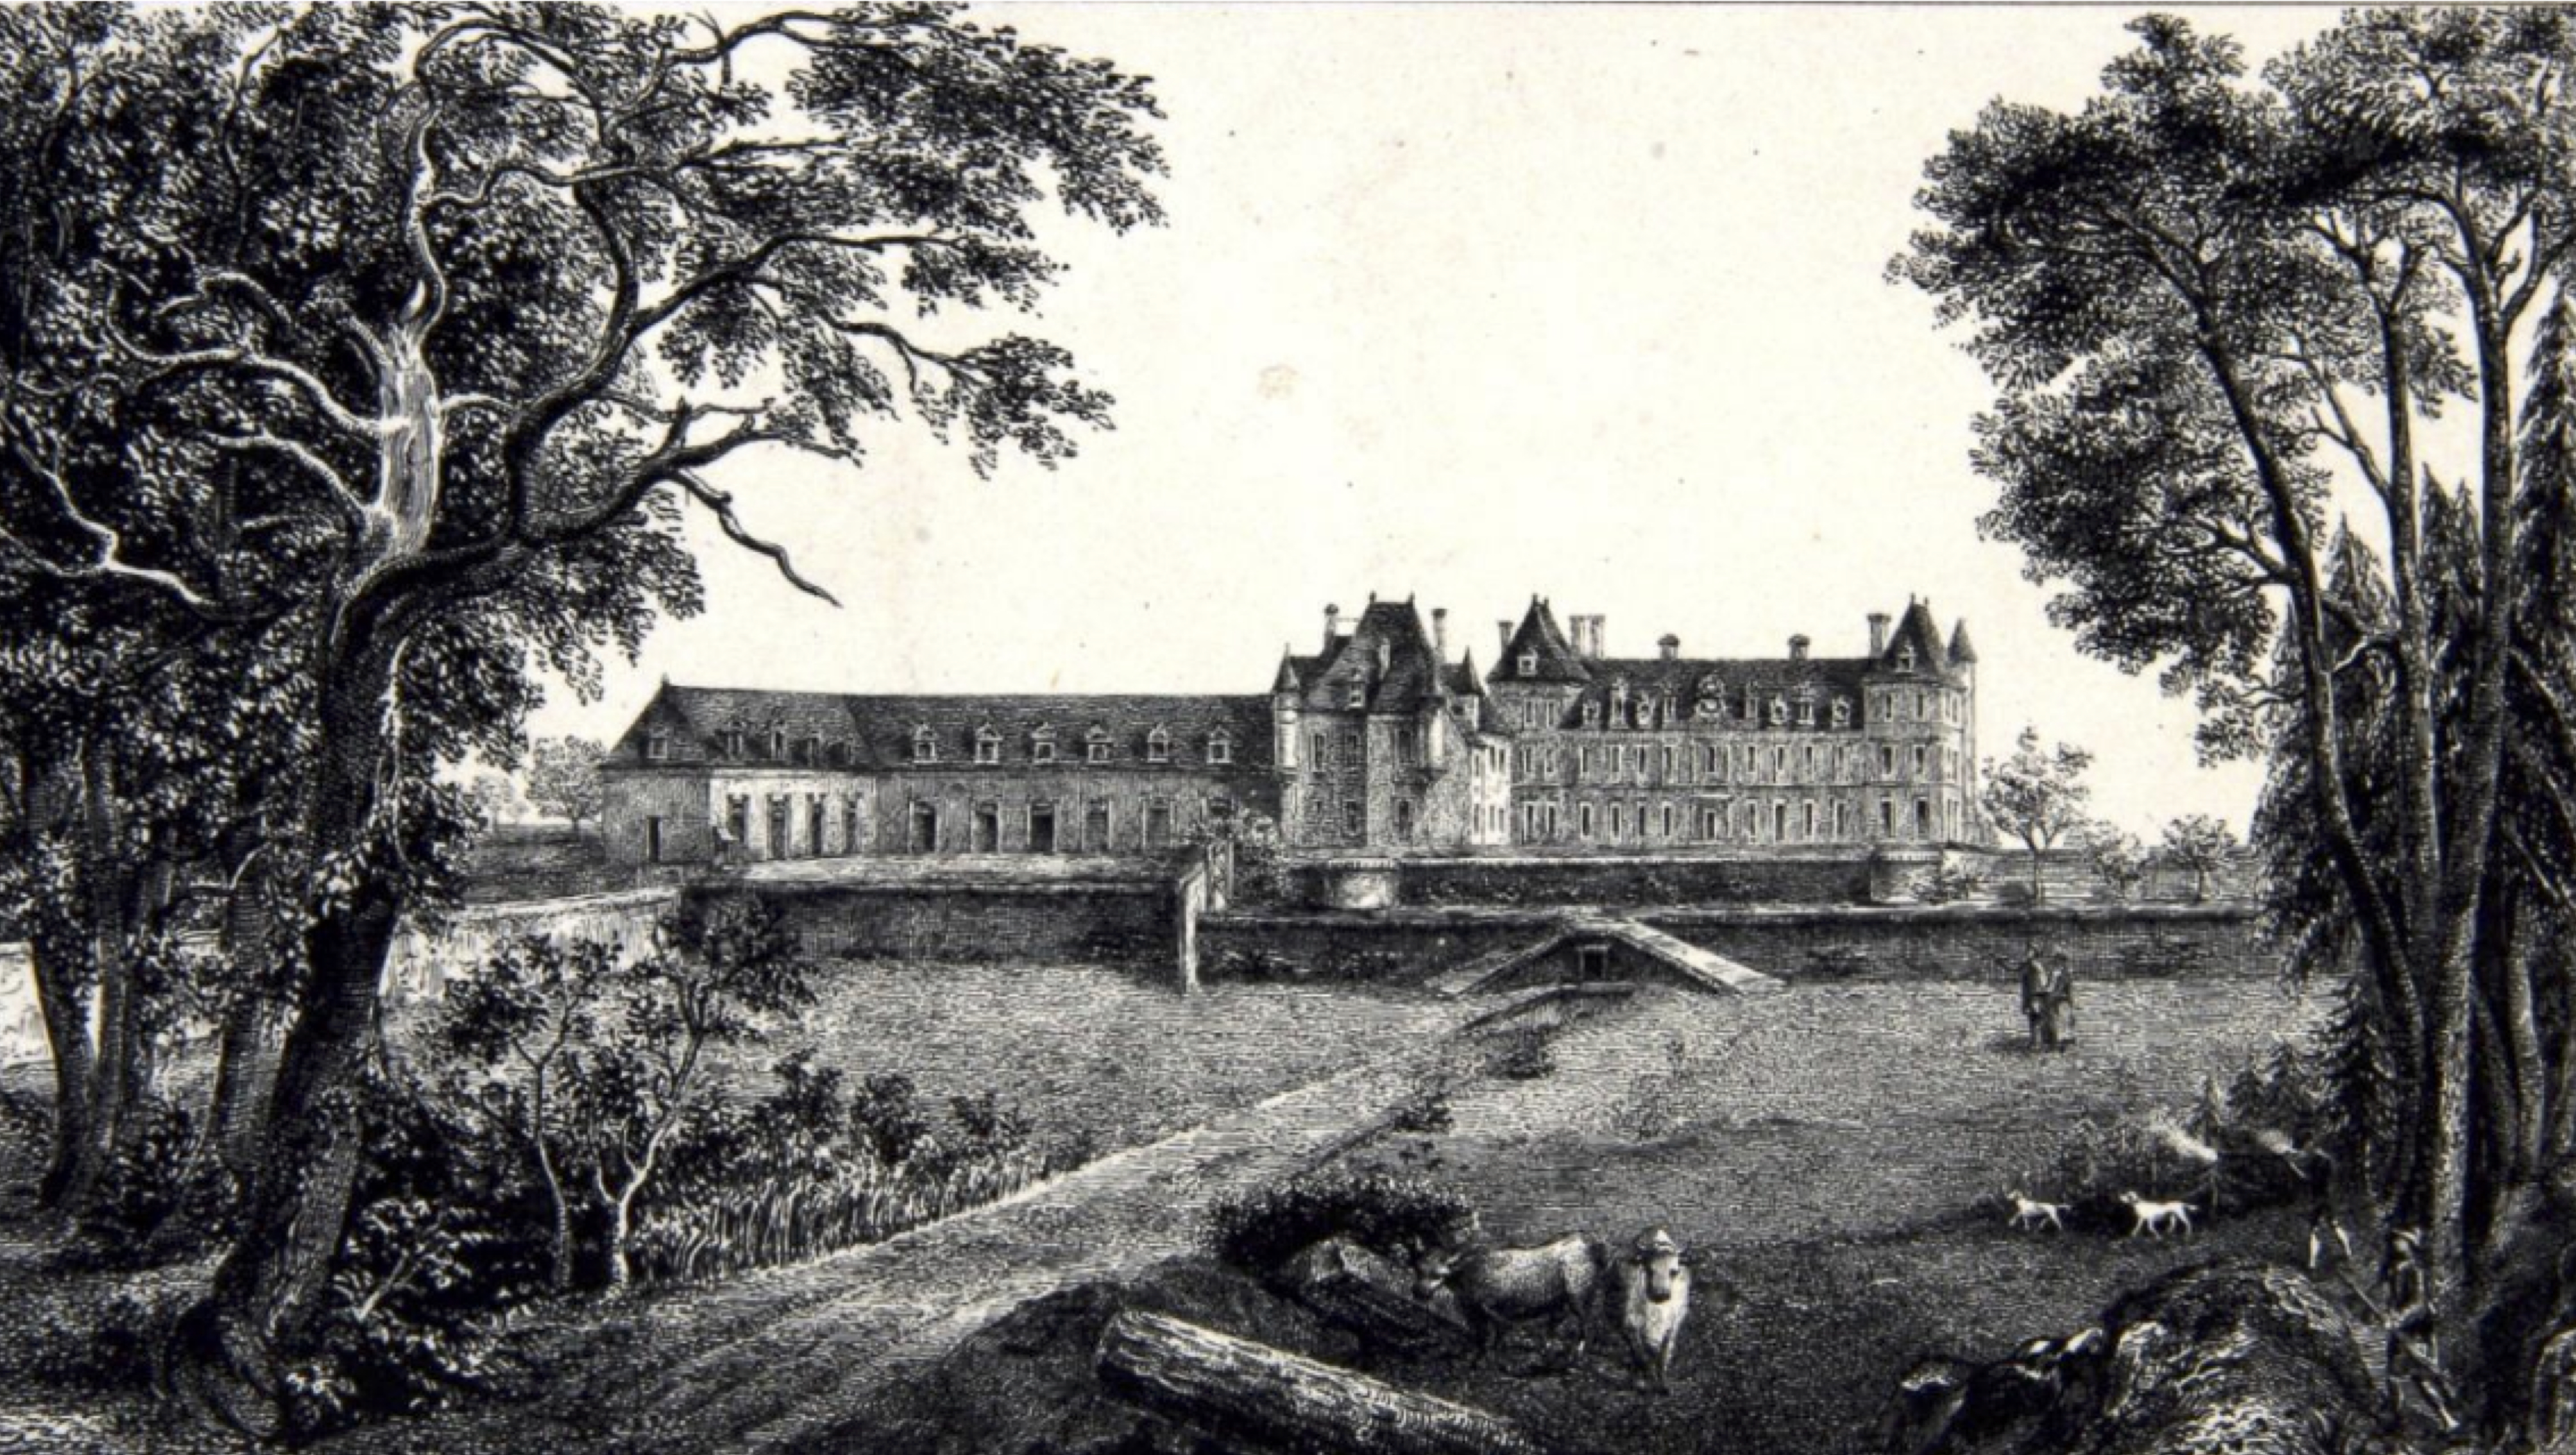 https://upload.wikimedia.org/wikipedia/commons/0/04/CHATEAU_DE_LA_BOURDAISIERE.jpg